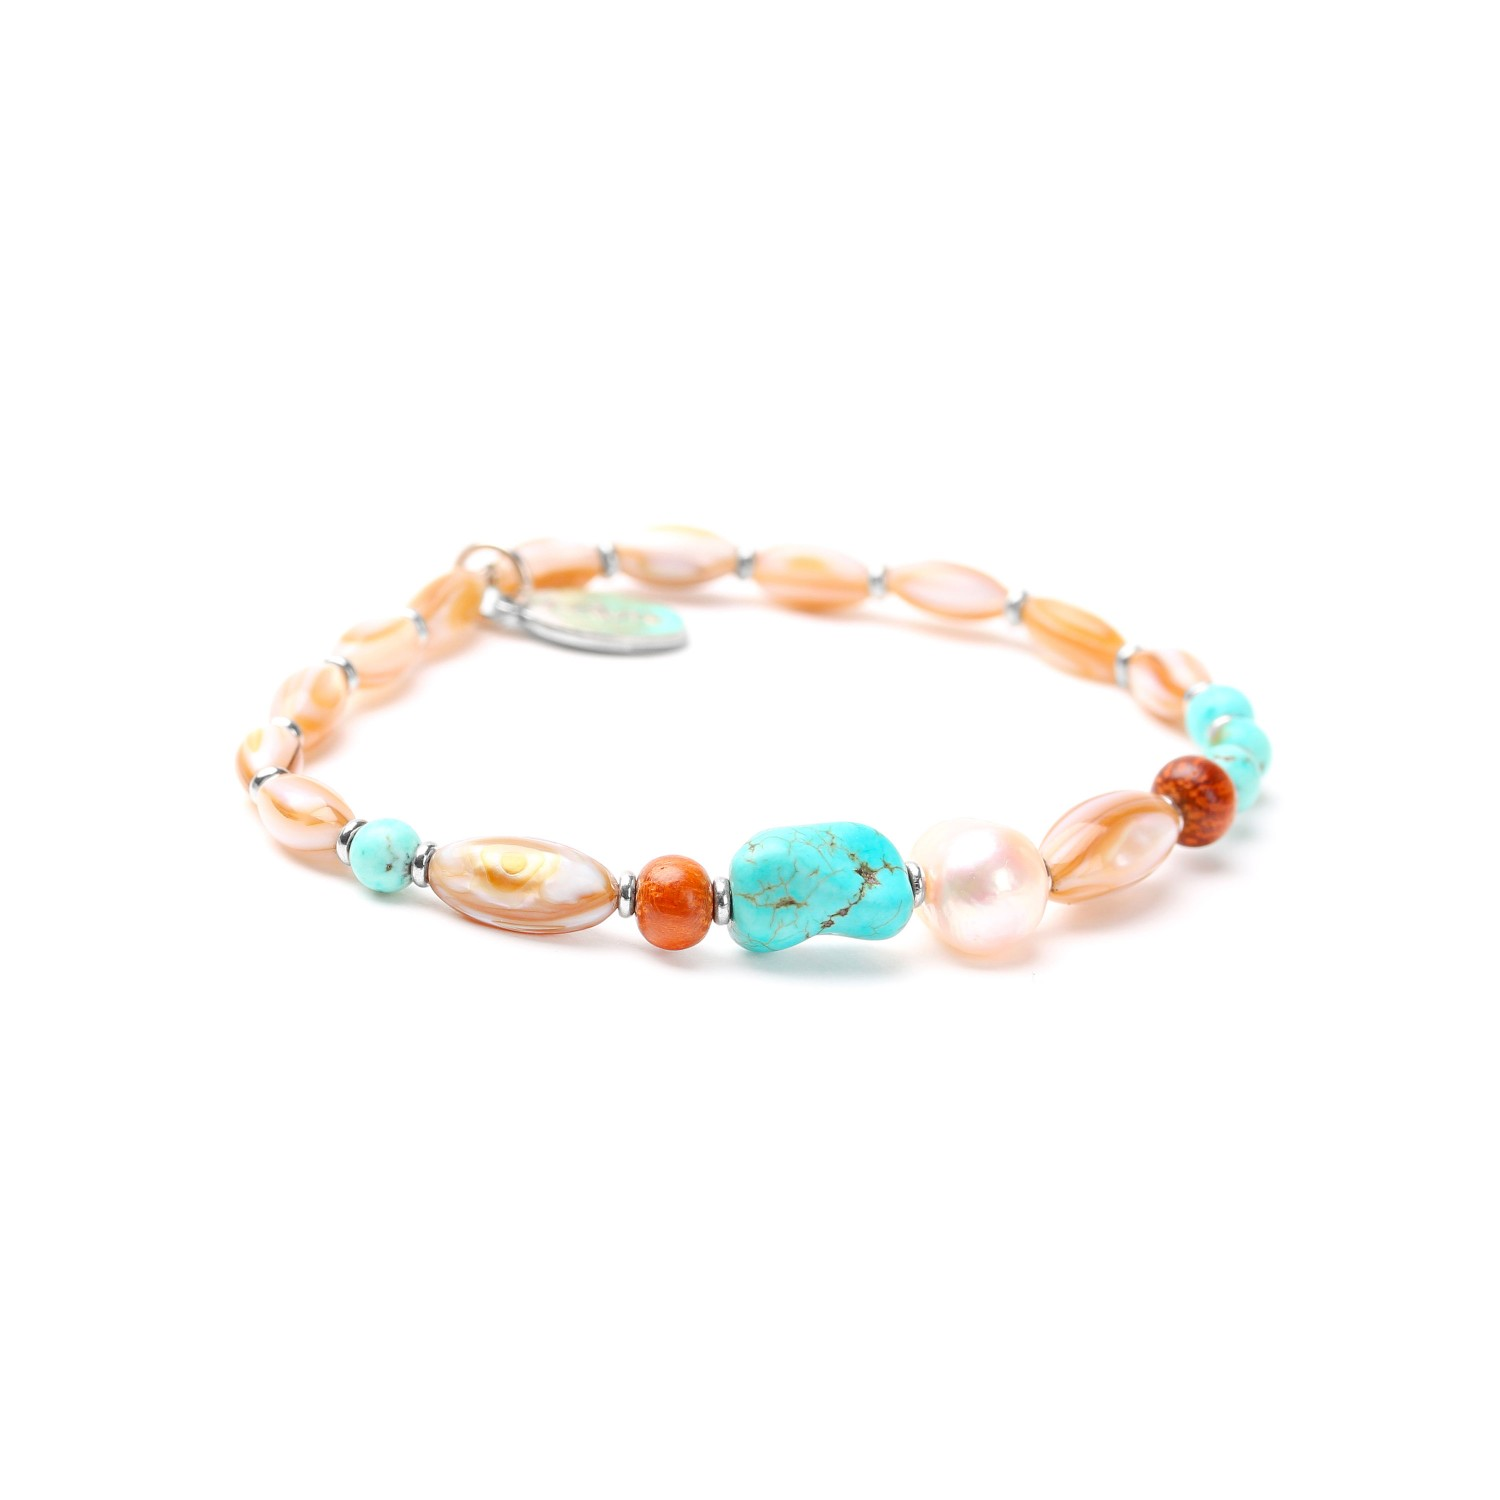 MANGAREVA thin stretch bracelet